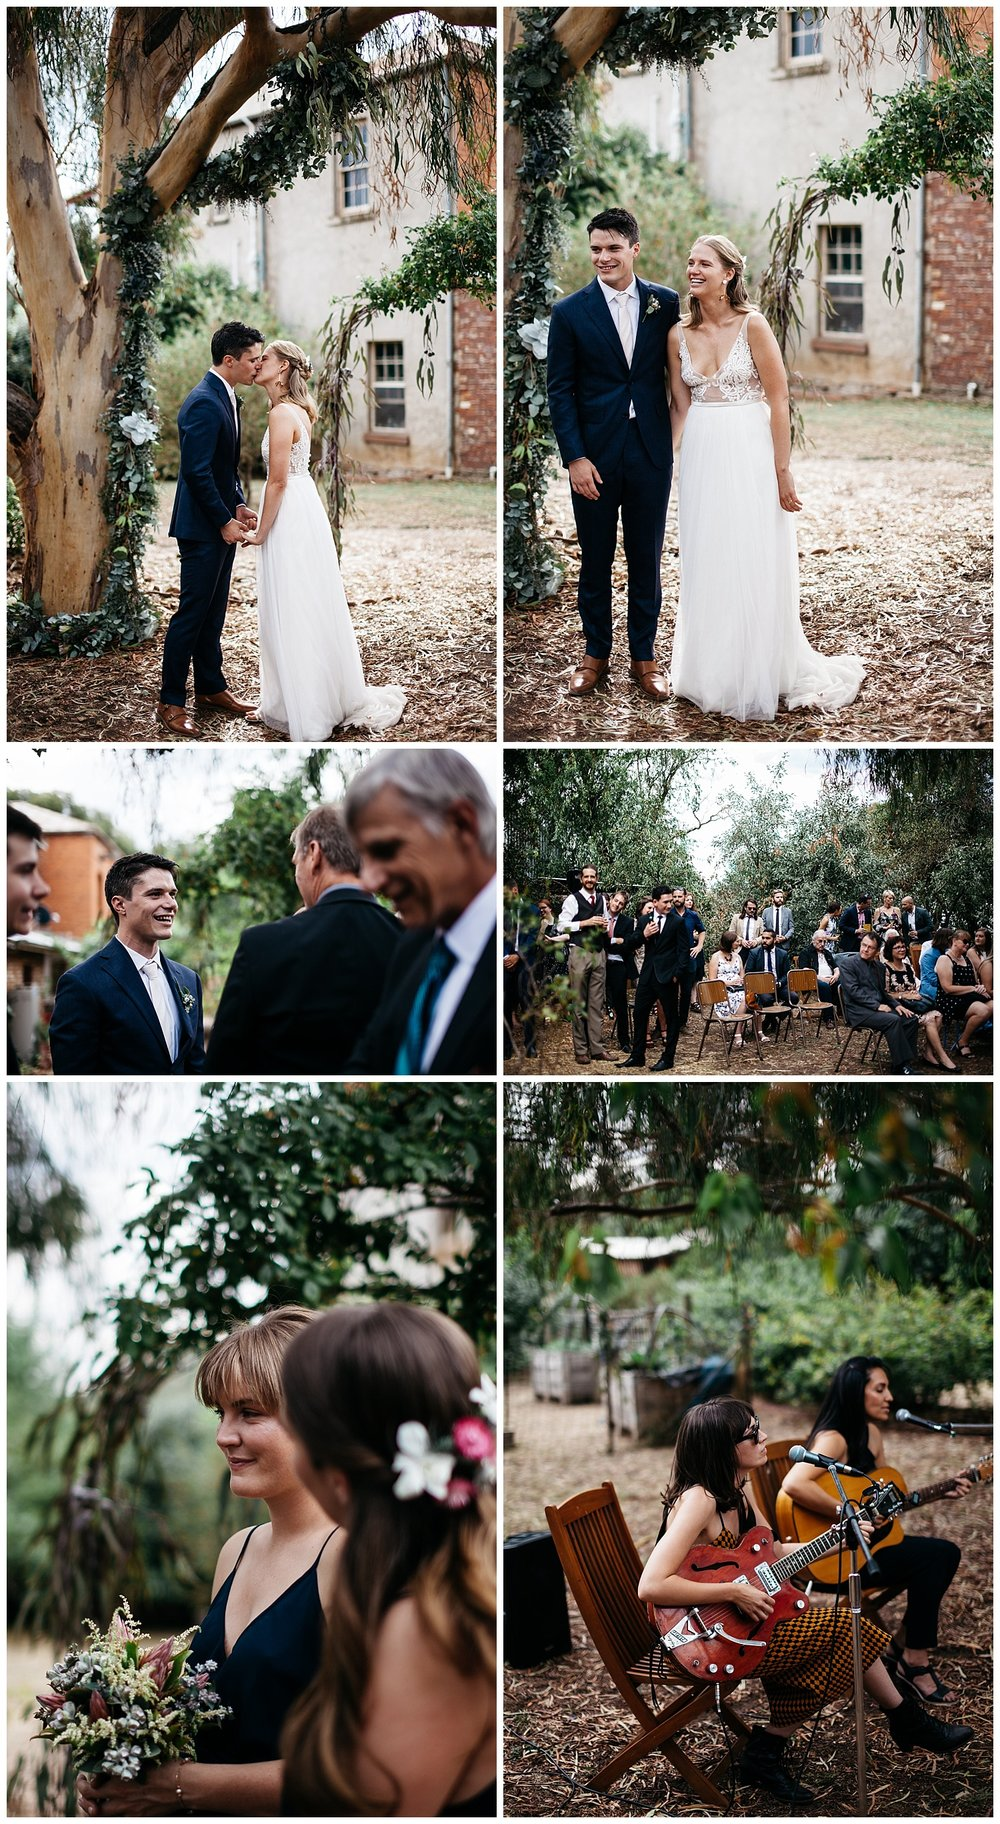 Castelmaine_Melbourne_Wedding_Photographer_0021.jpg